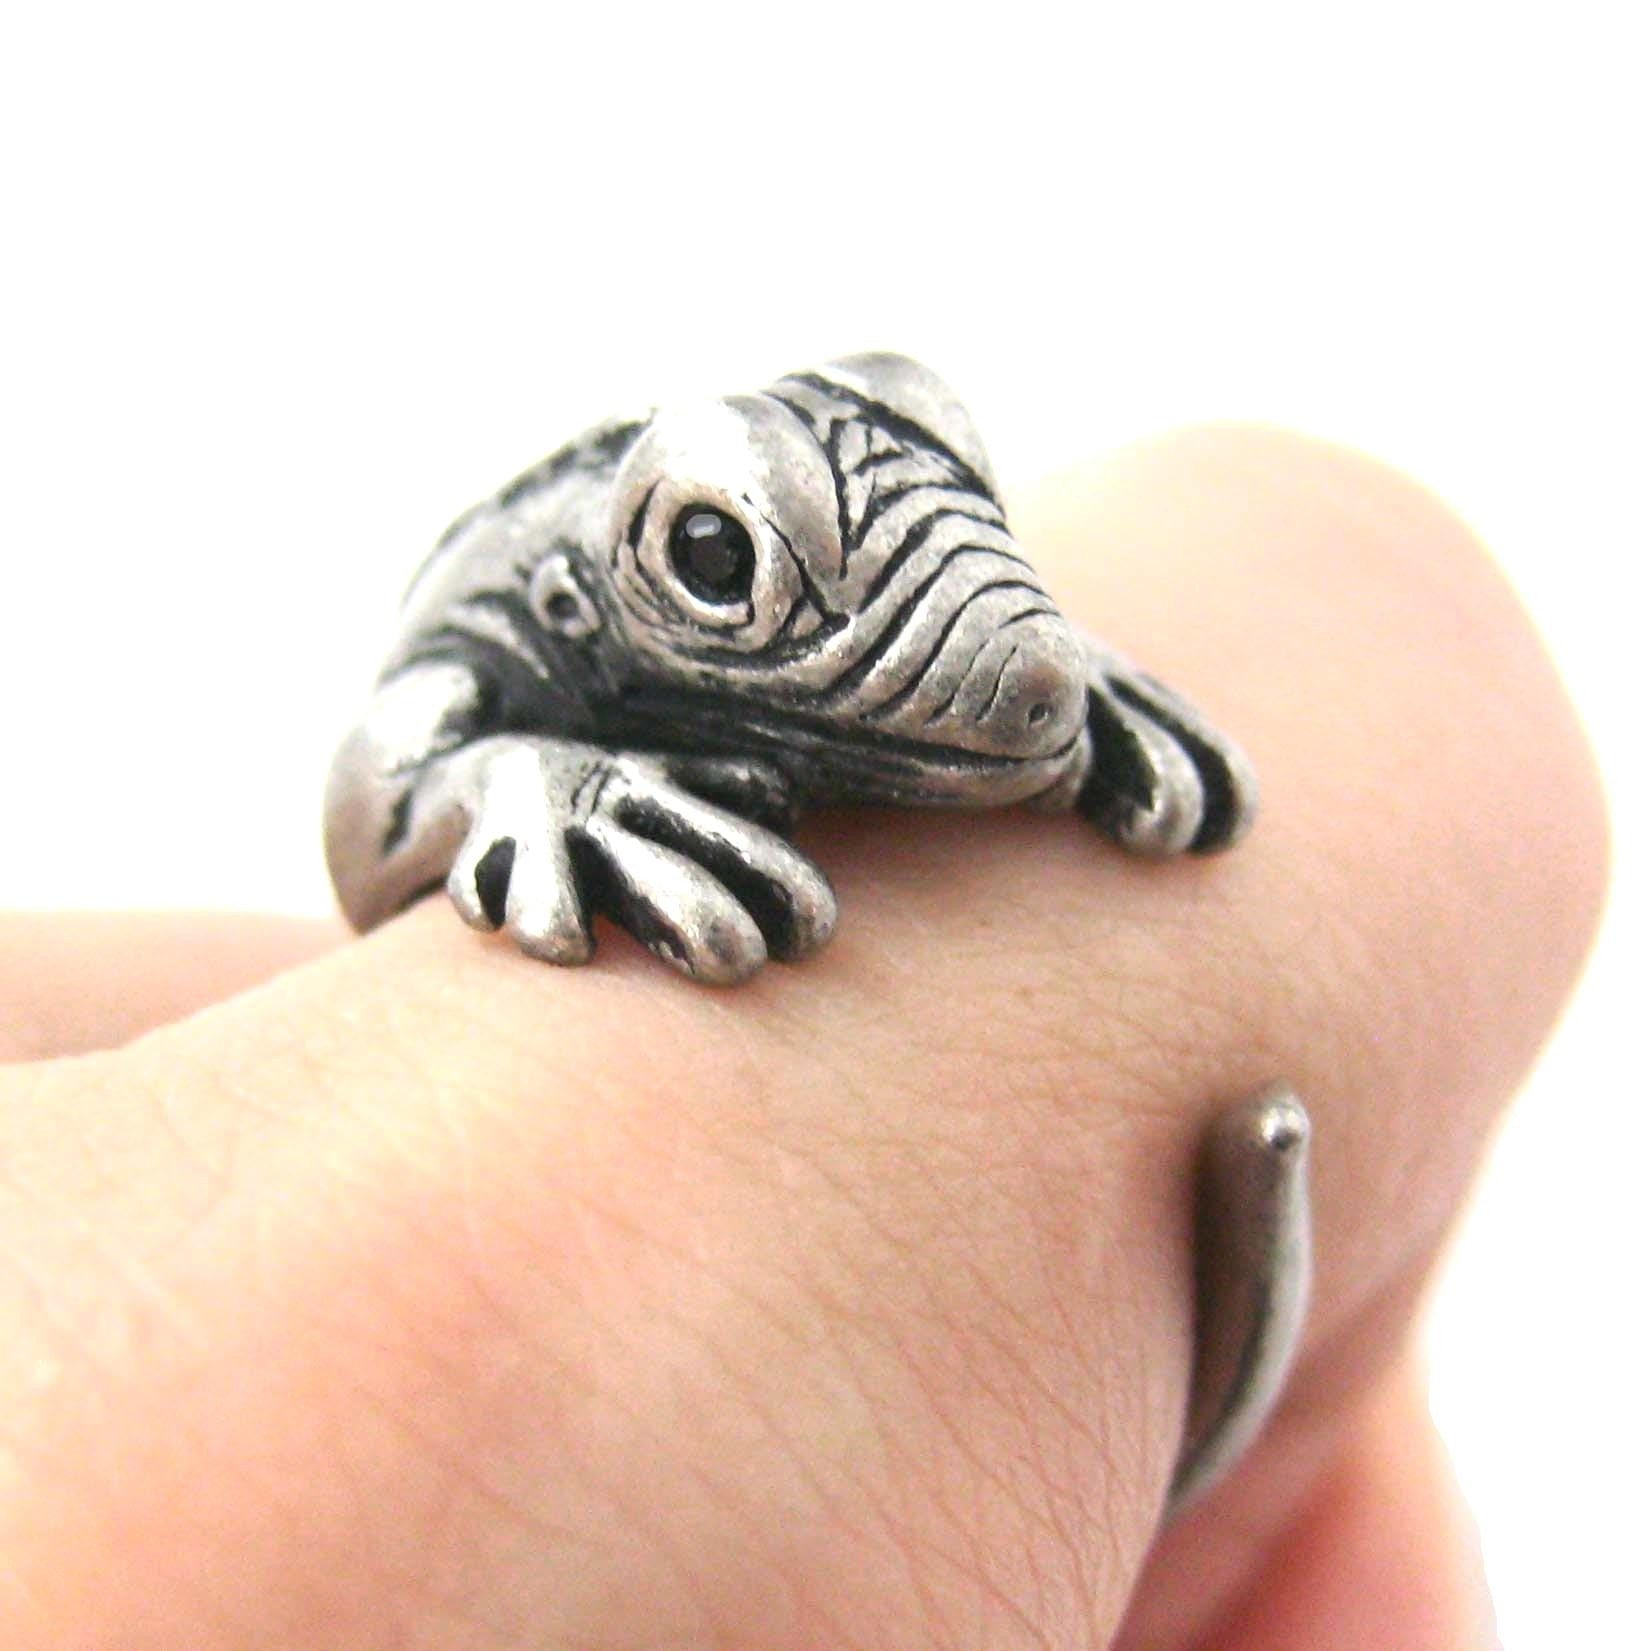 iguana-chameleon-animal-wrap-around-ring-in-silver